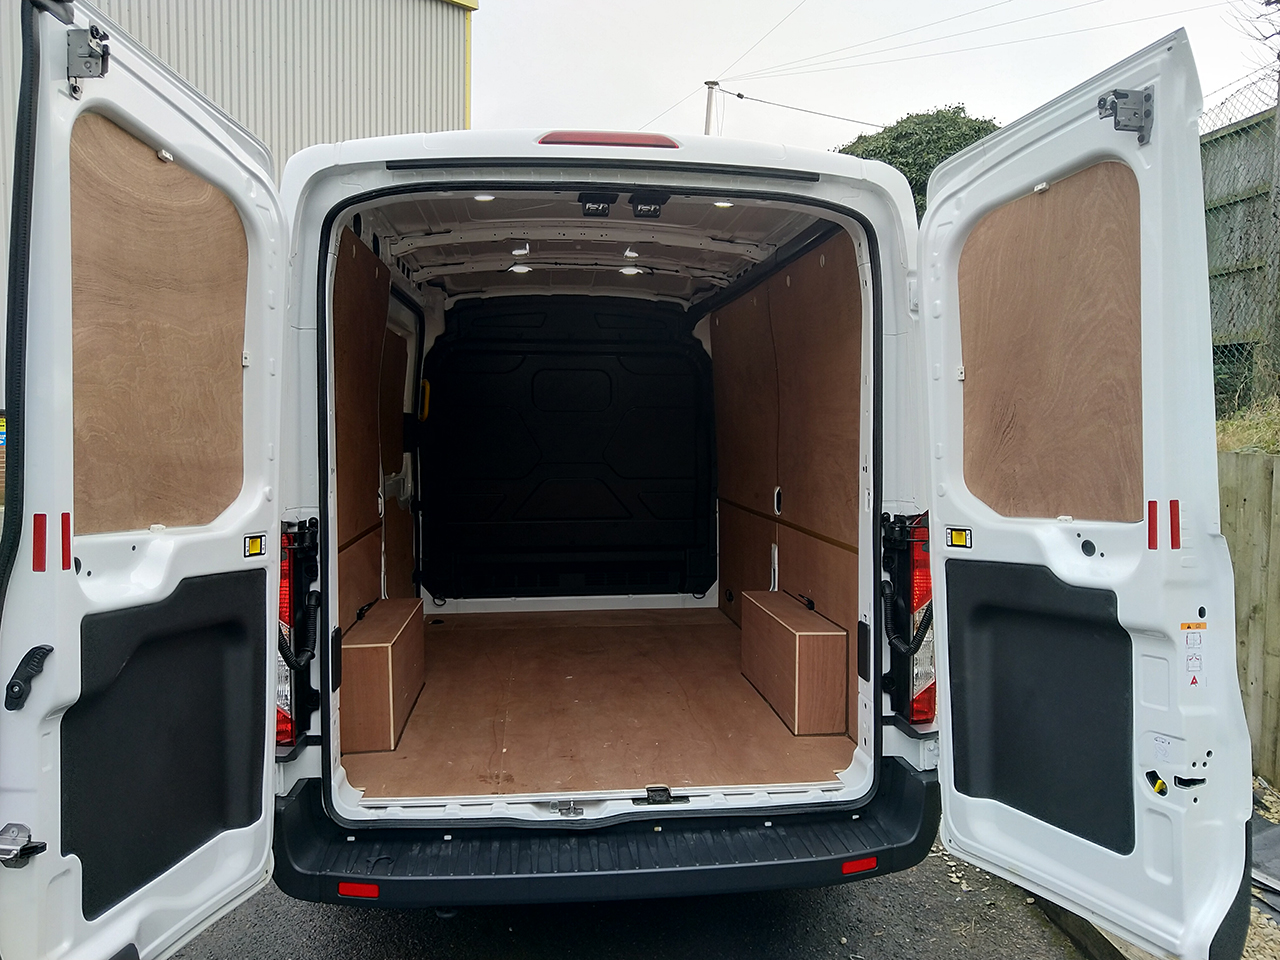 2a282d60e4 Standard Van Hire for Frome